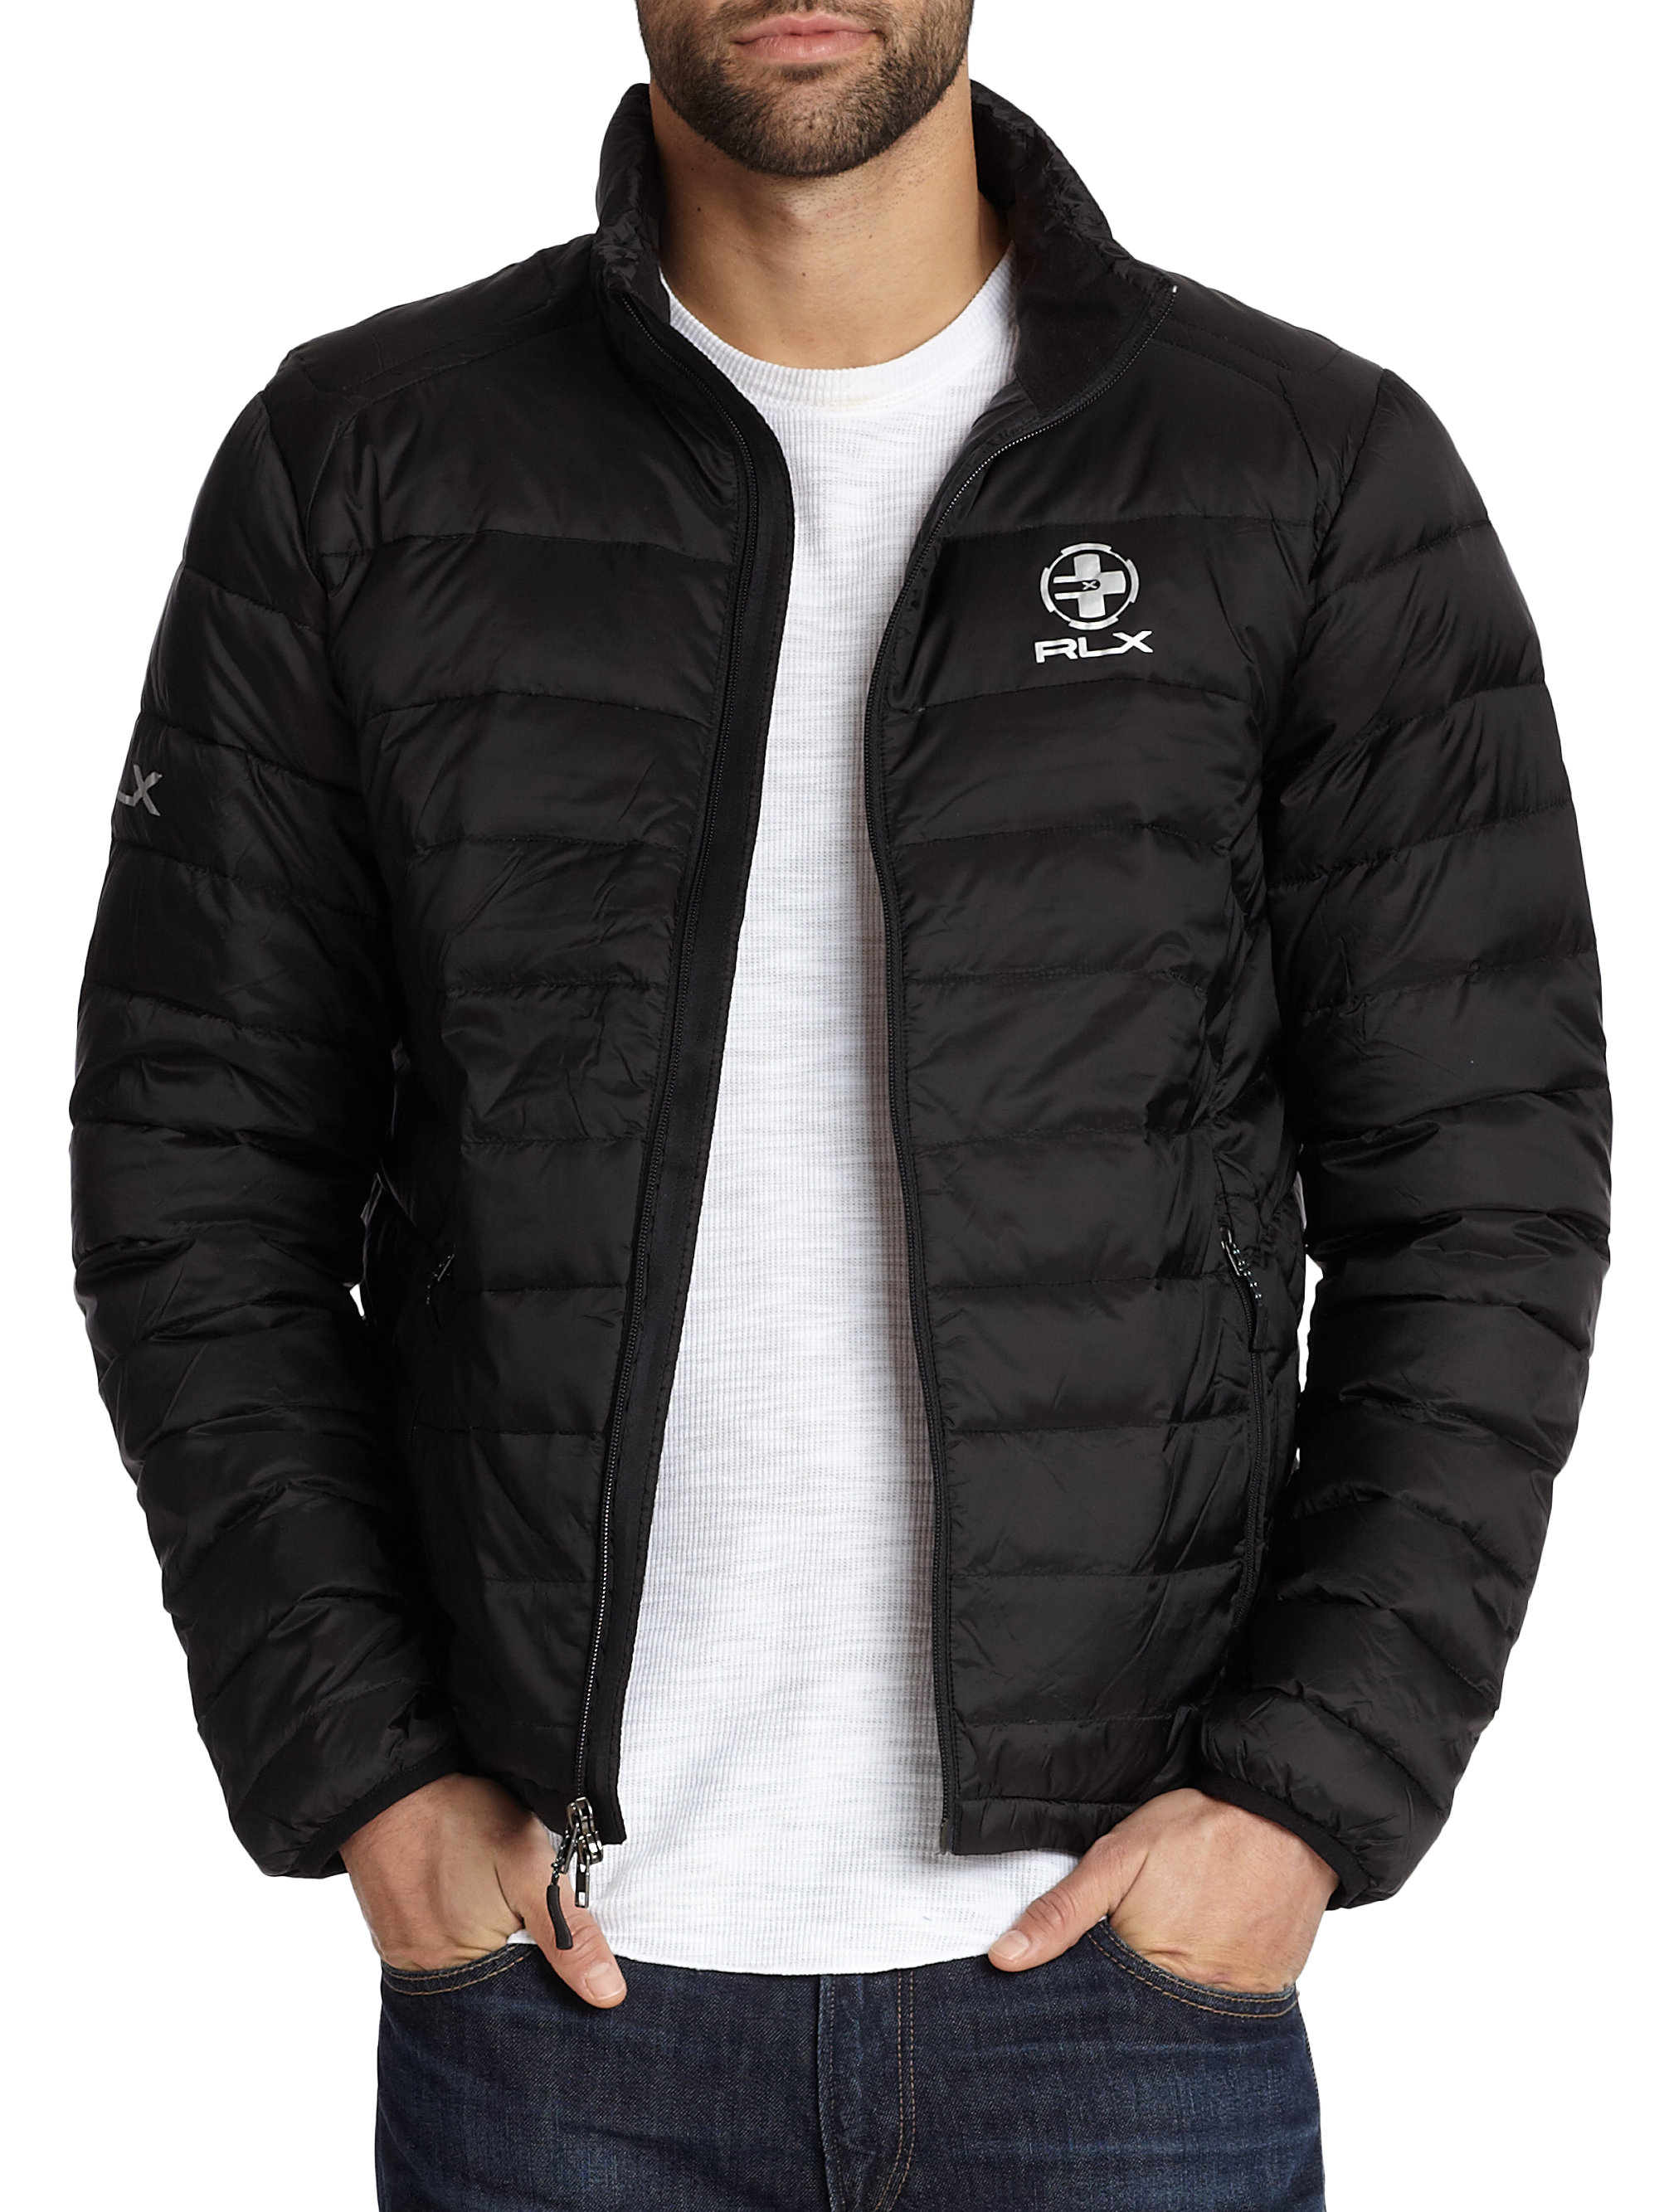 Find great deals on eBay for mens polo jacket. Shop with confidence. Skip to main content. eBay: Polo Ralph Lauren Mens Down Vest Jacket Quilted Size L, XL, 2XL Blue Puffer $ See more like this. Polo Ralph Lauren Mens Hooded Jacket. Brand New. $ or Best Offer +$ shipping.